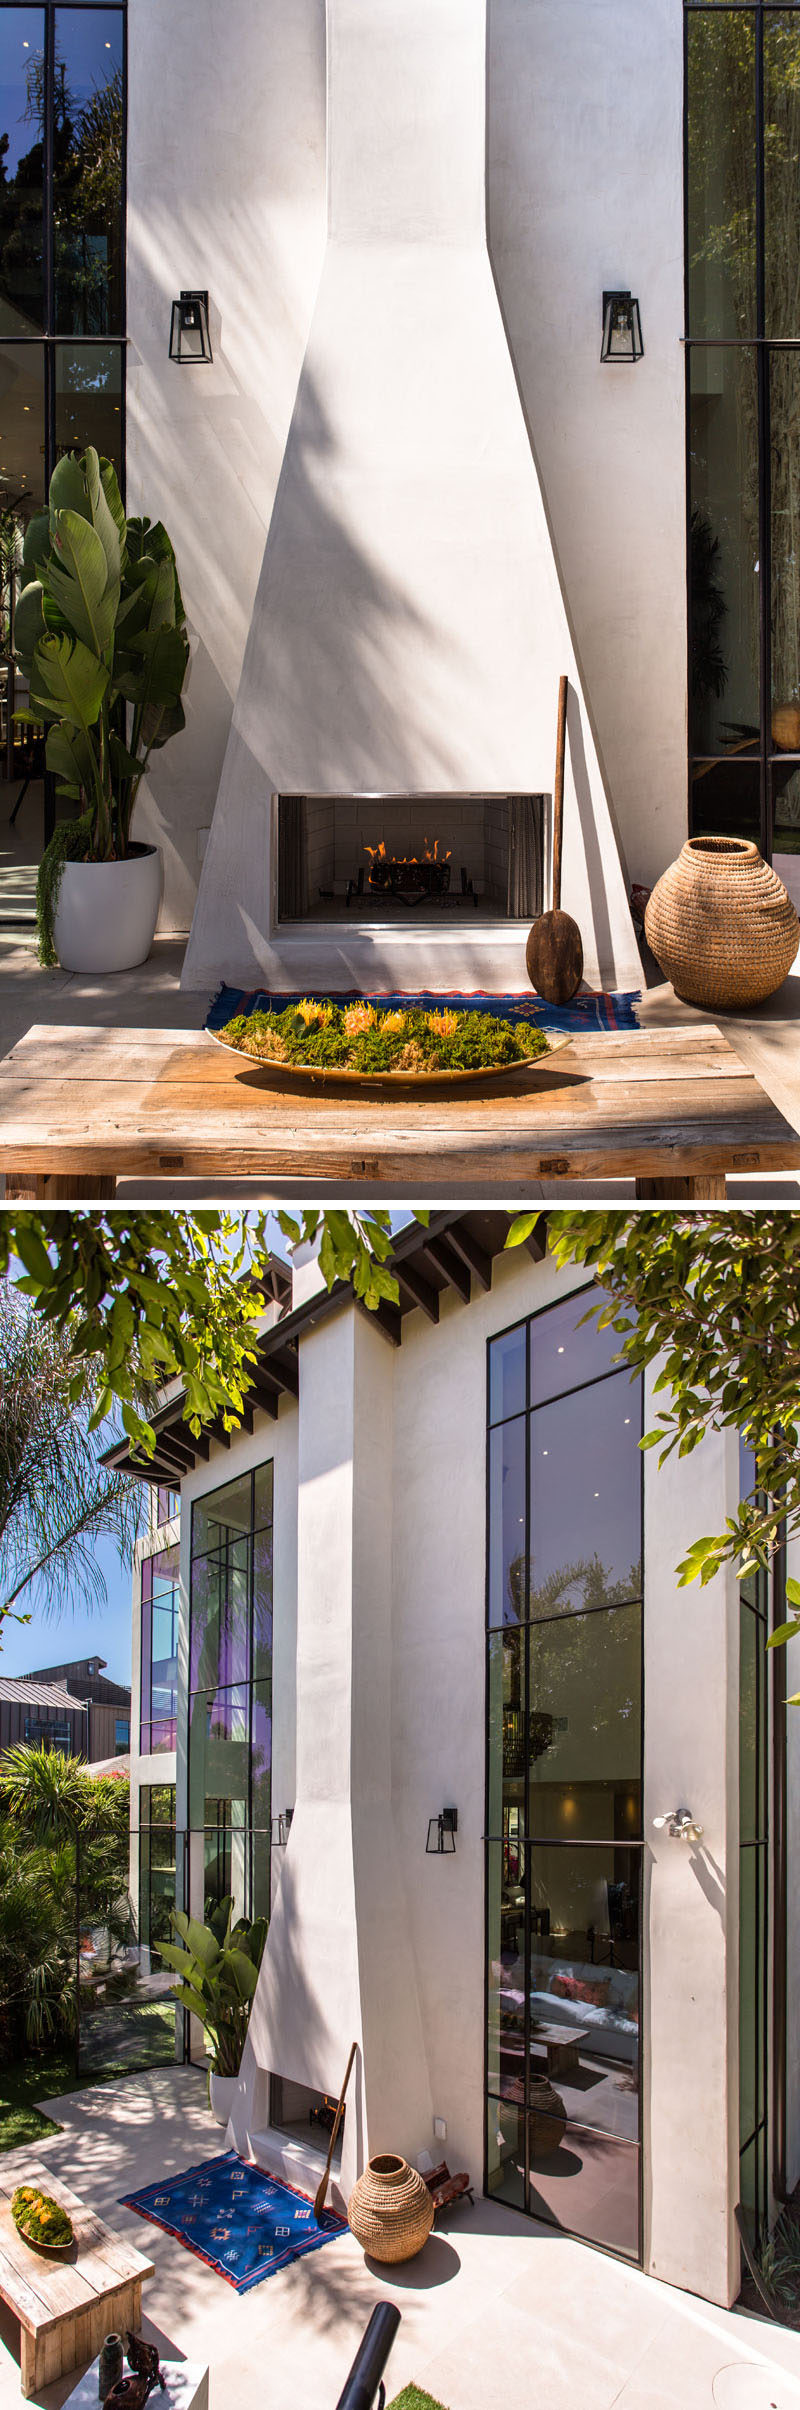 This home has a dramatic white outdoor fireplace with a chimney that runs the height of the home.